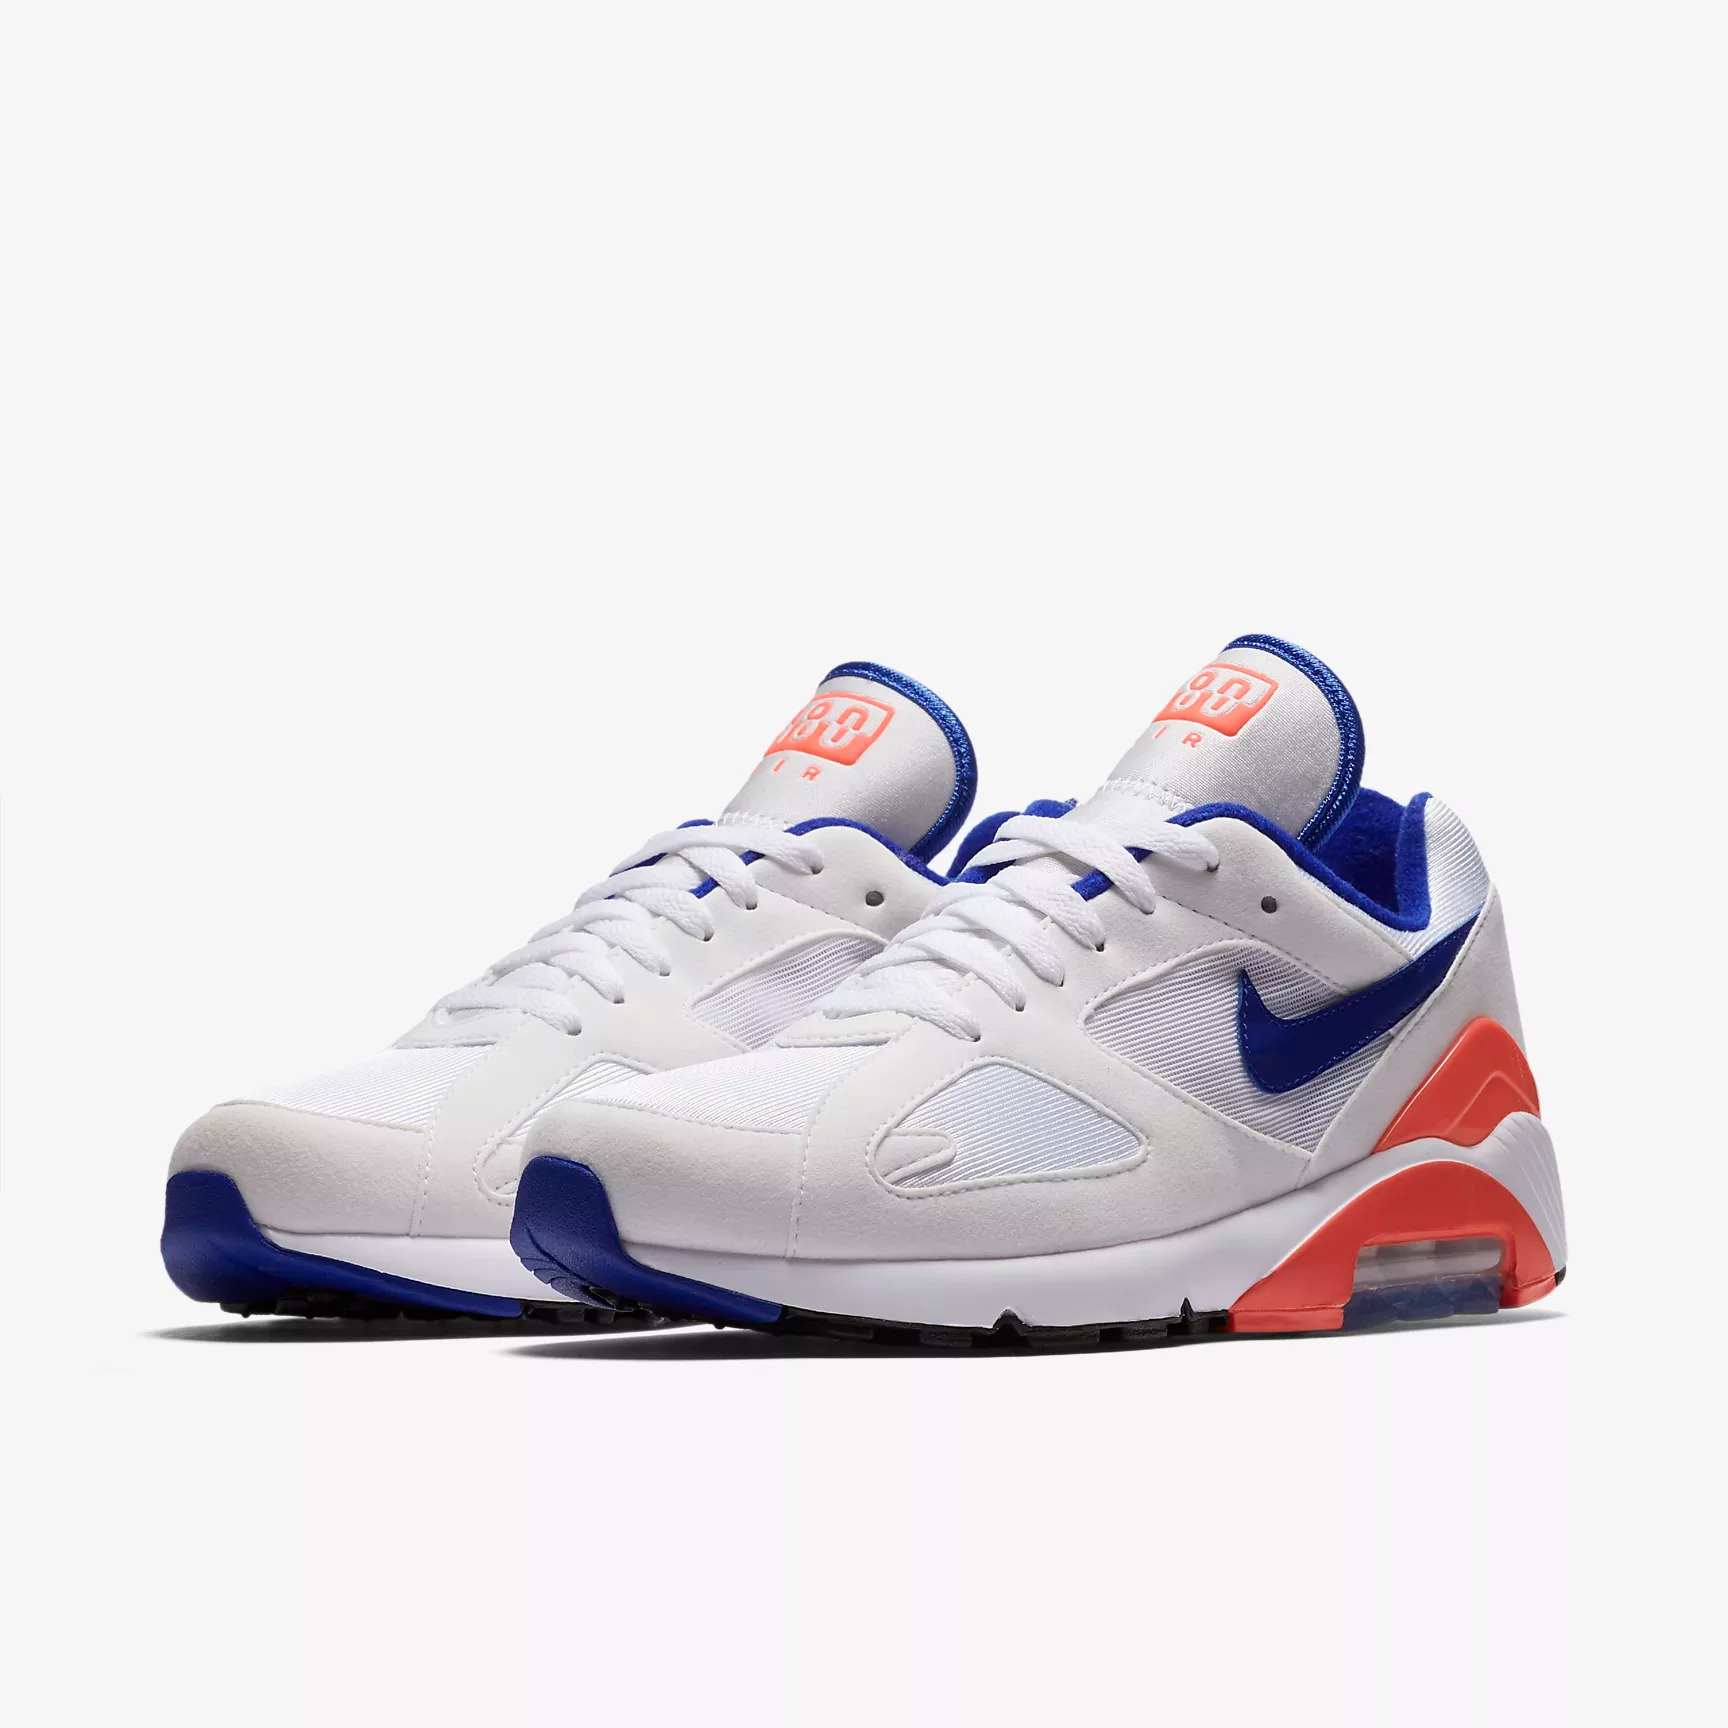 Nike Wmns Air Max 180 Sneakers SPORT SHOES Lifestyle Shoes